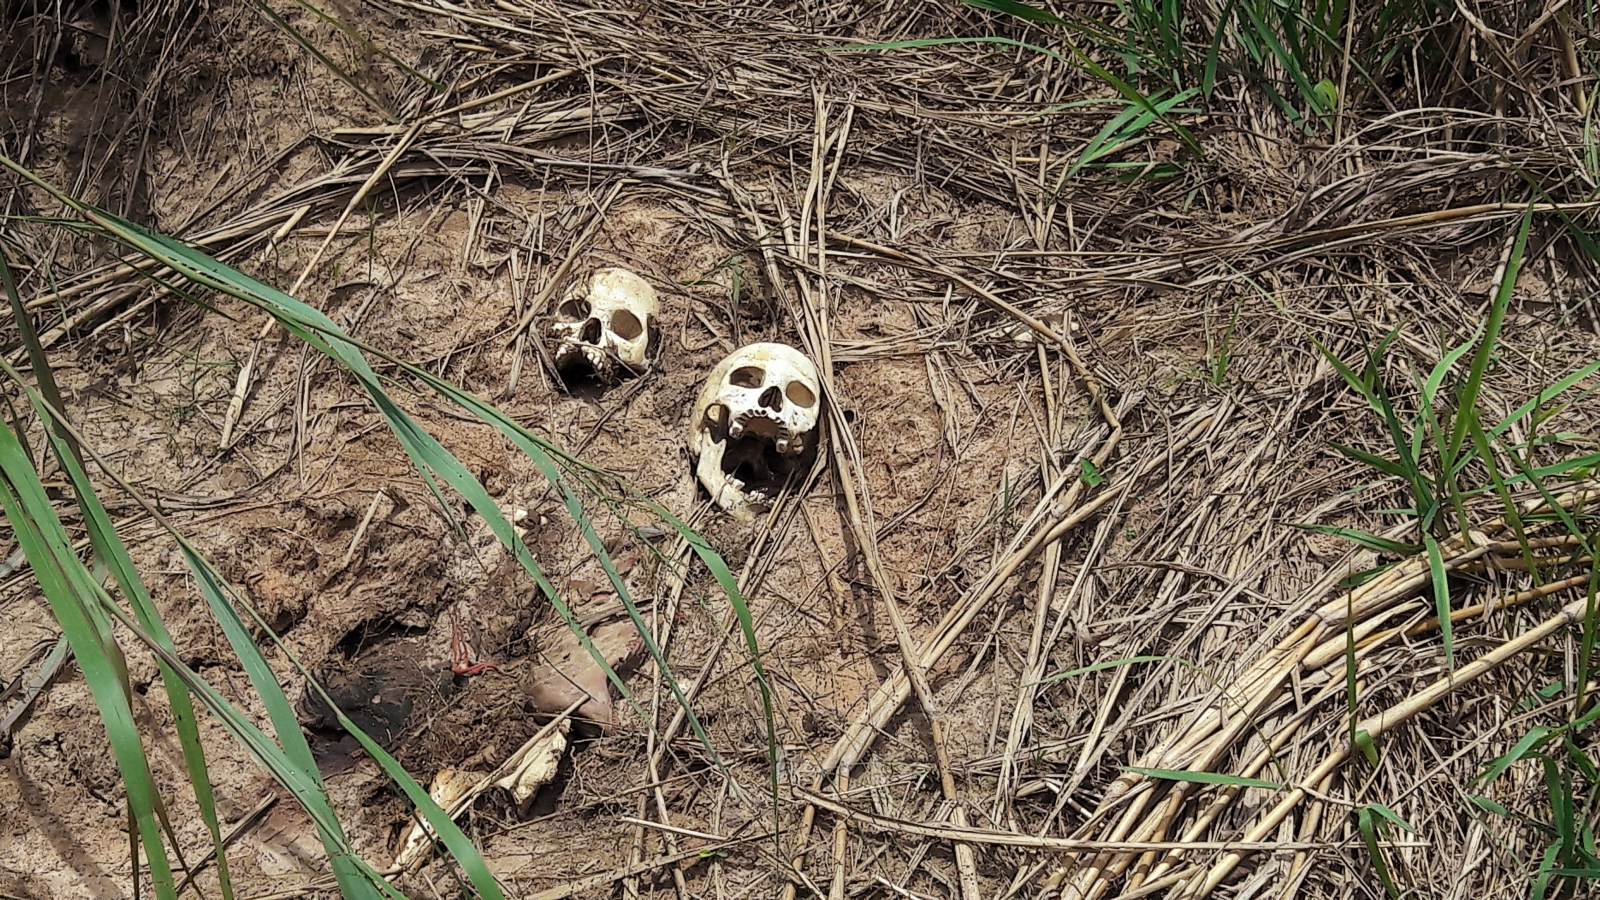 Mass grave in Kasai Central